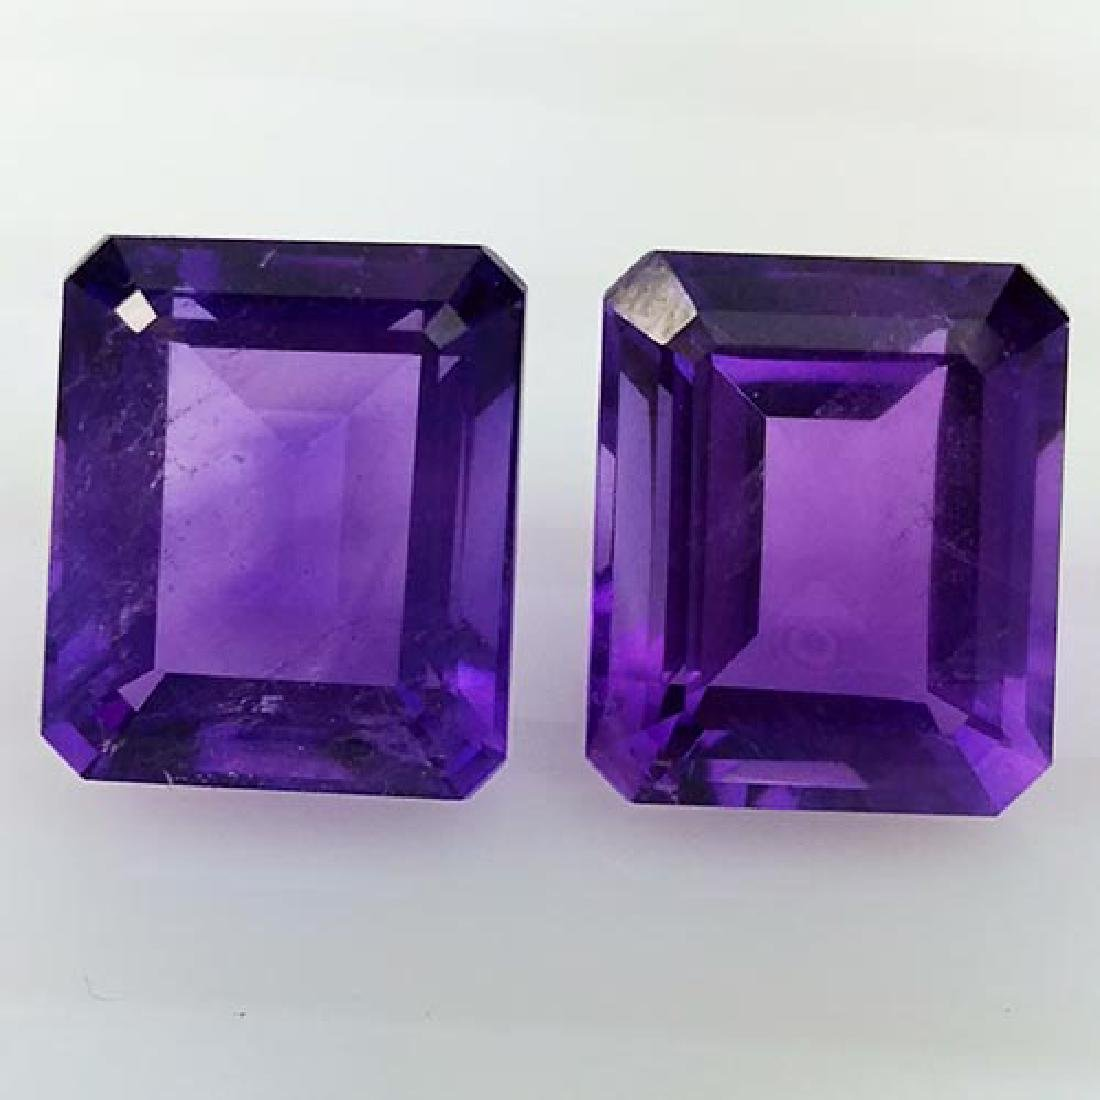 12.10Ct NATURAL STUNNING AMETHYST PAIR VVS QUALITY - 3